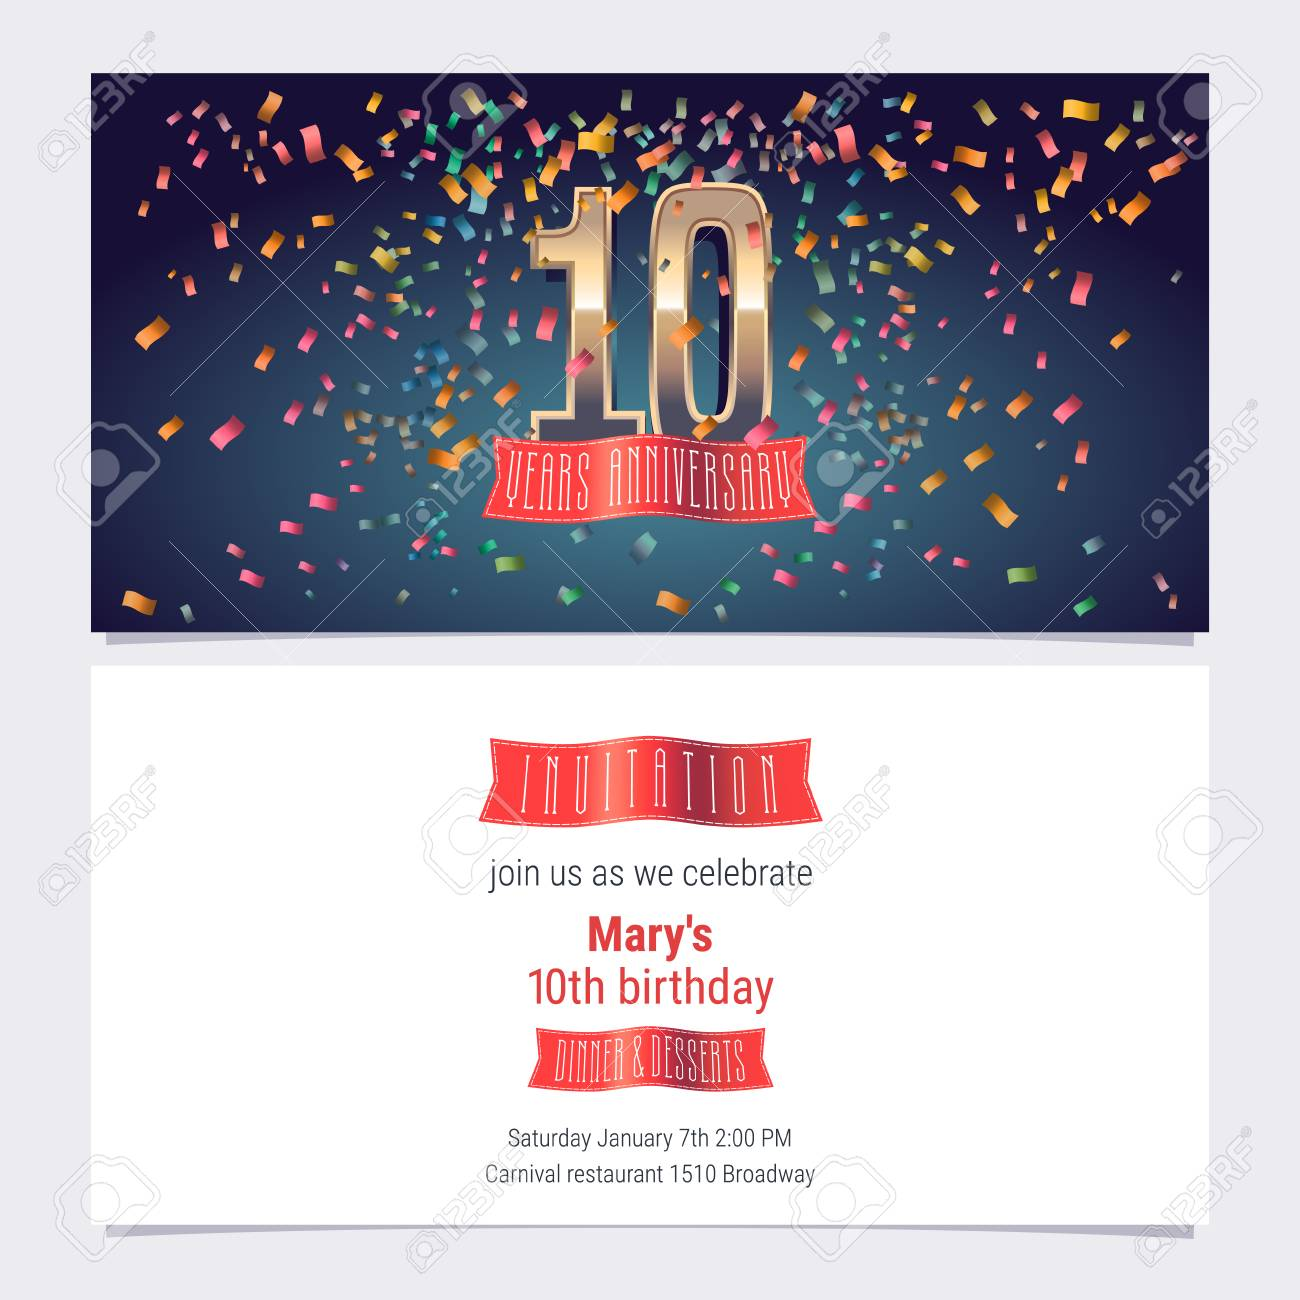 10 years anniversary invitation vector illustration graphic design 10 years anniversary invitation vector illustration graphic design template with golden number for 10th anniversary stopboris Images